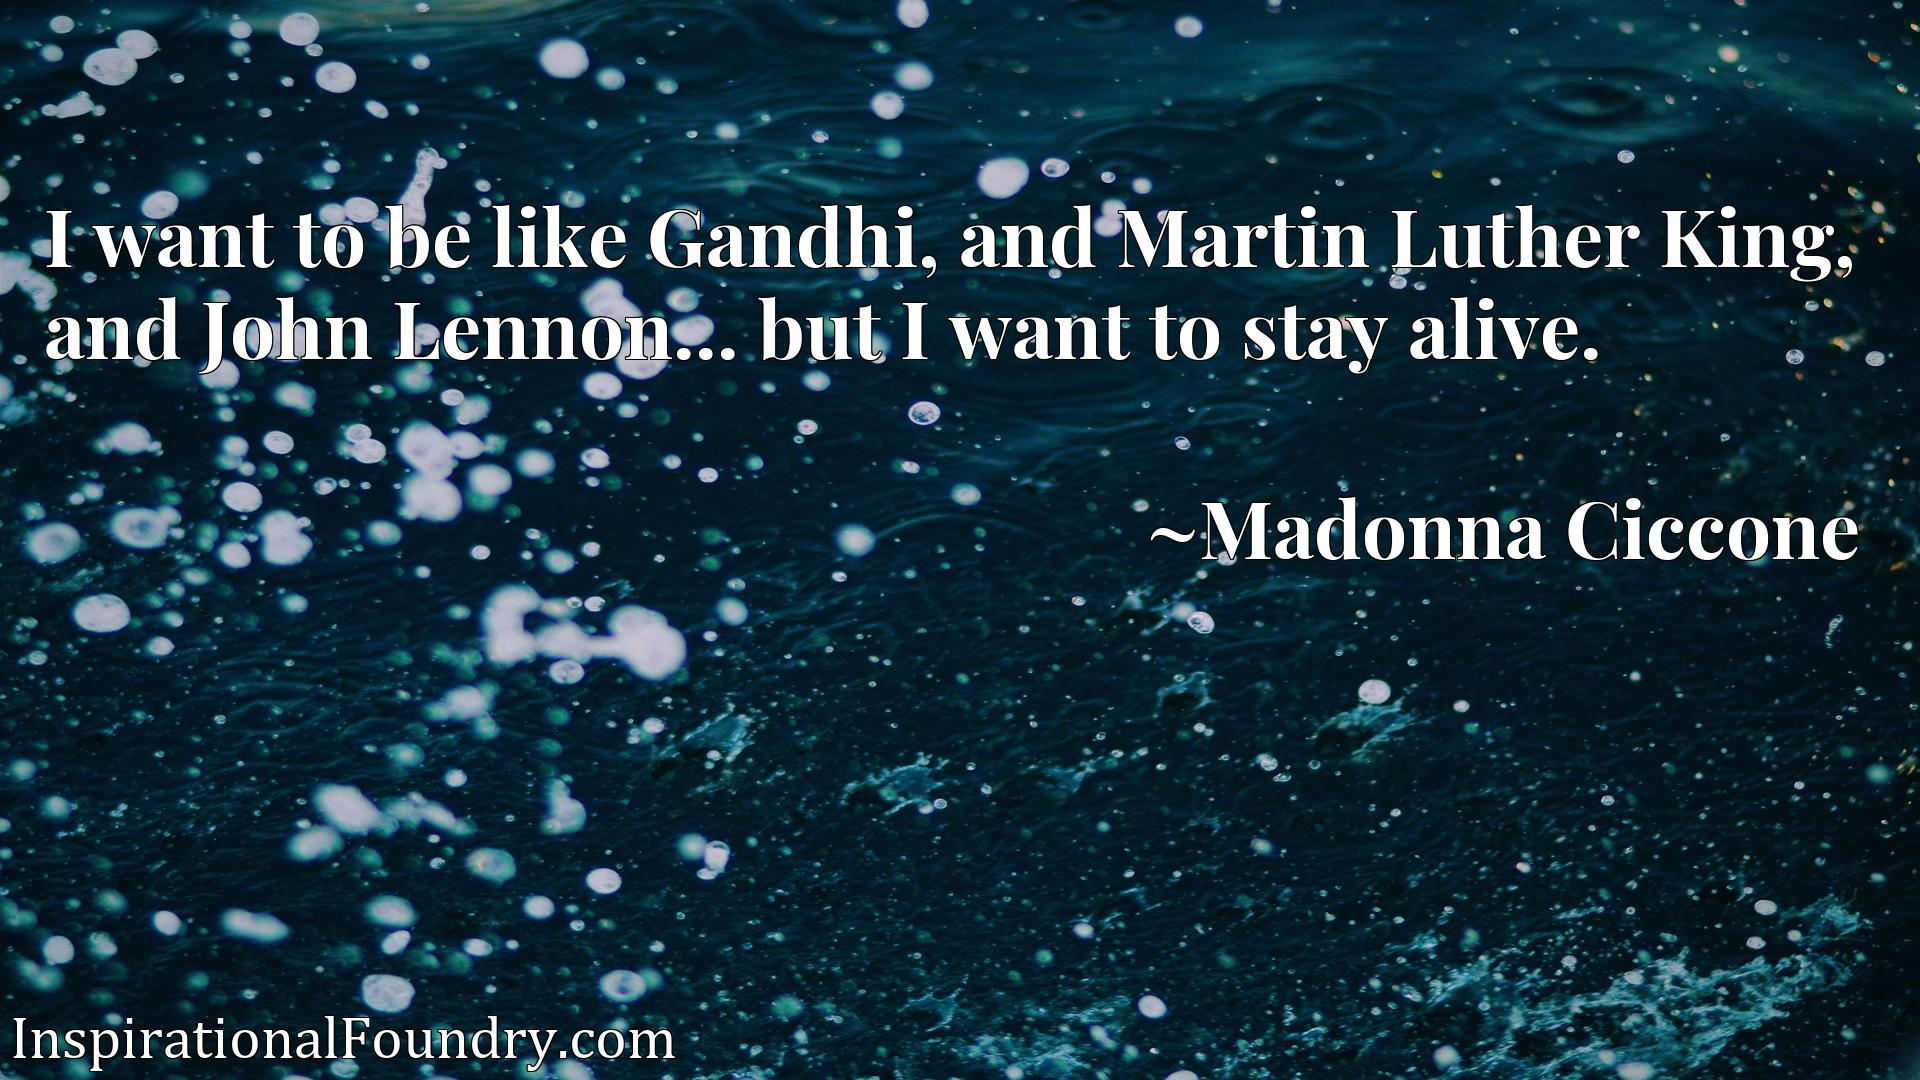 I want to be like Gandhi, and Martin Luther King, and John Lennon... but I want to stay alive.